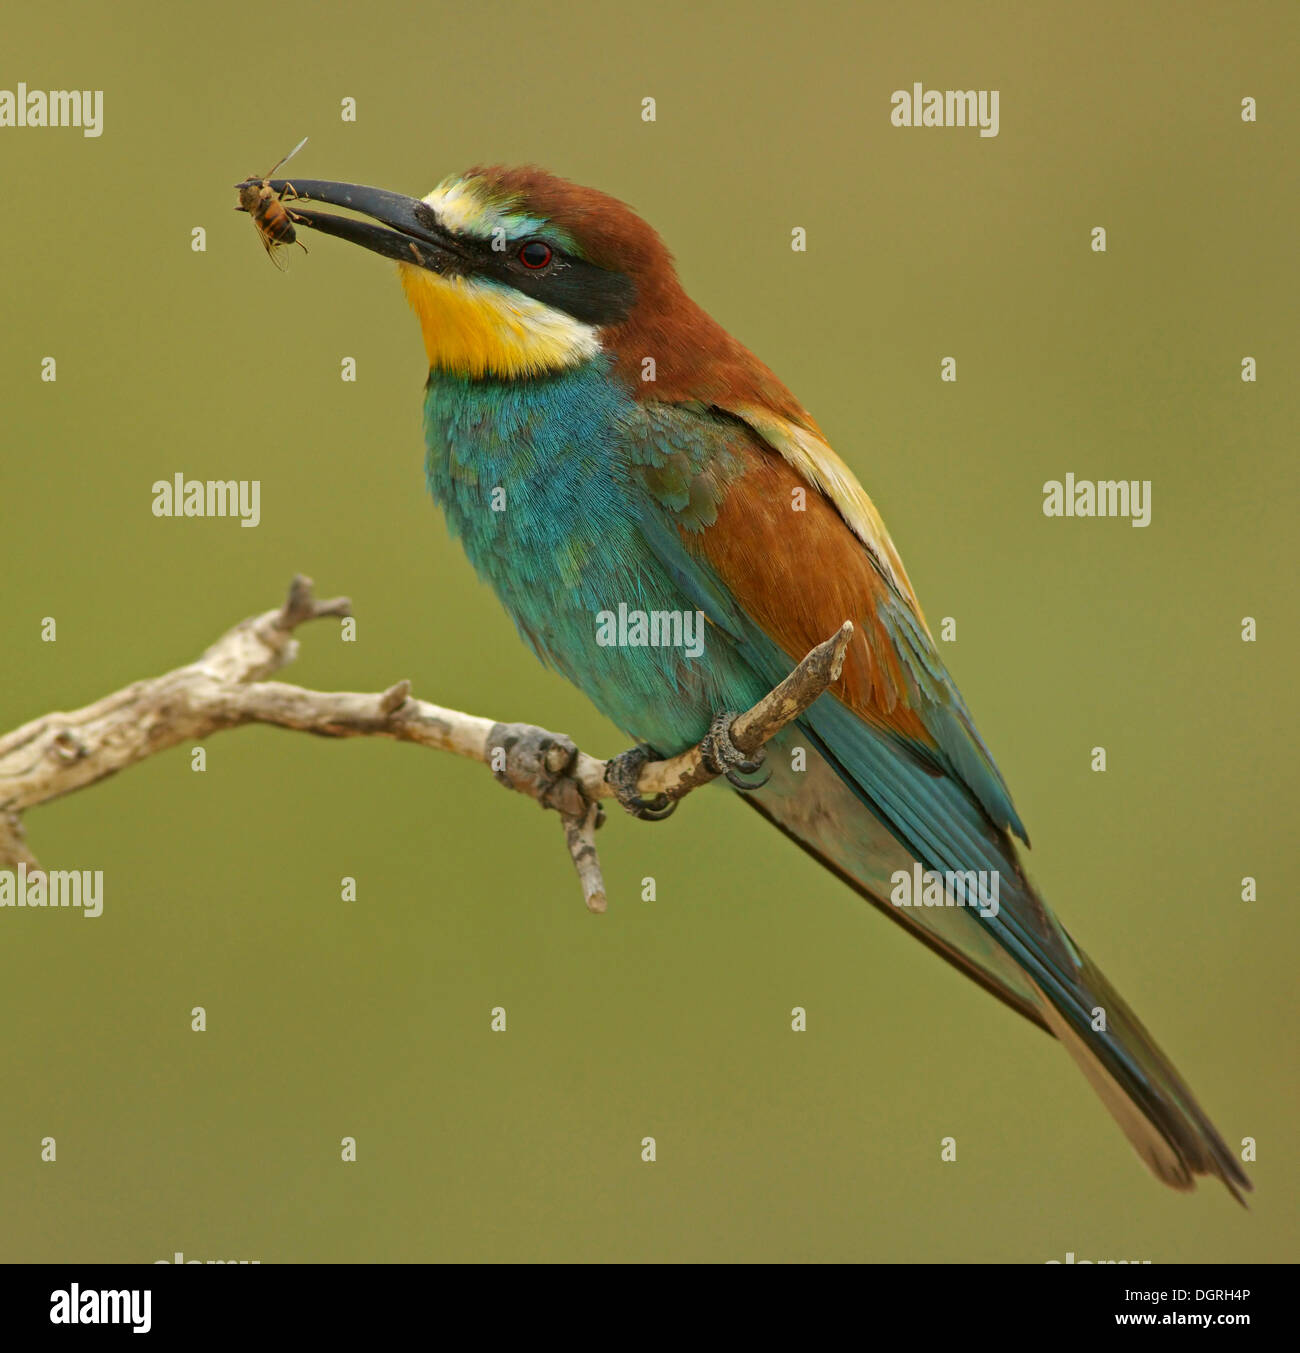 European Bee-eater (Merops apiaster), Bulgaria, Europe - Stock Image